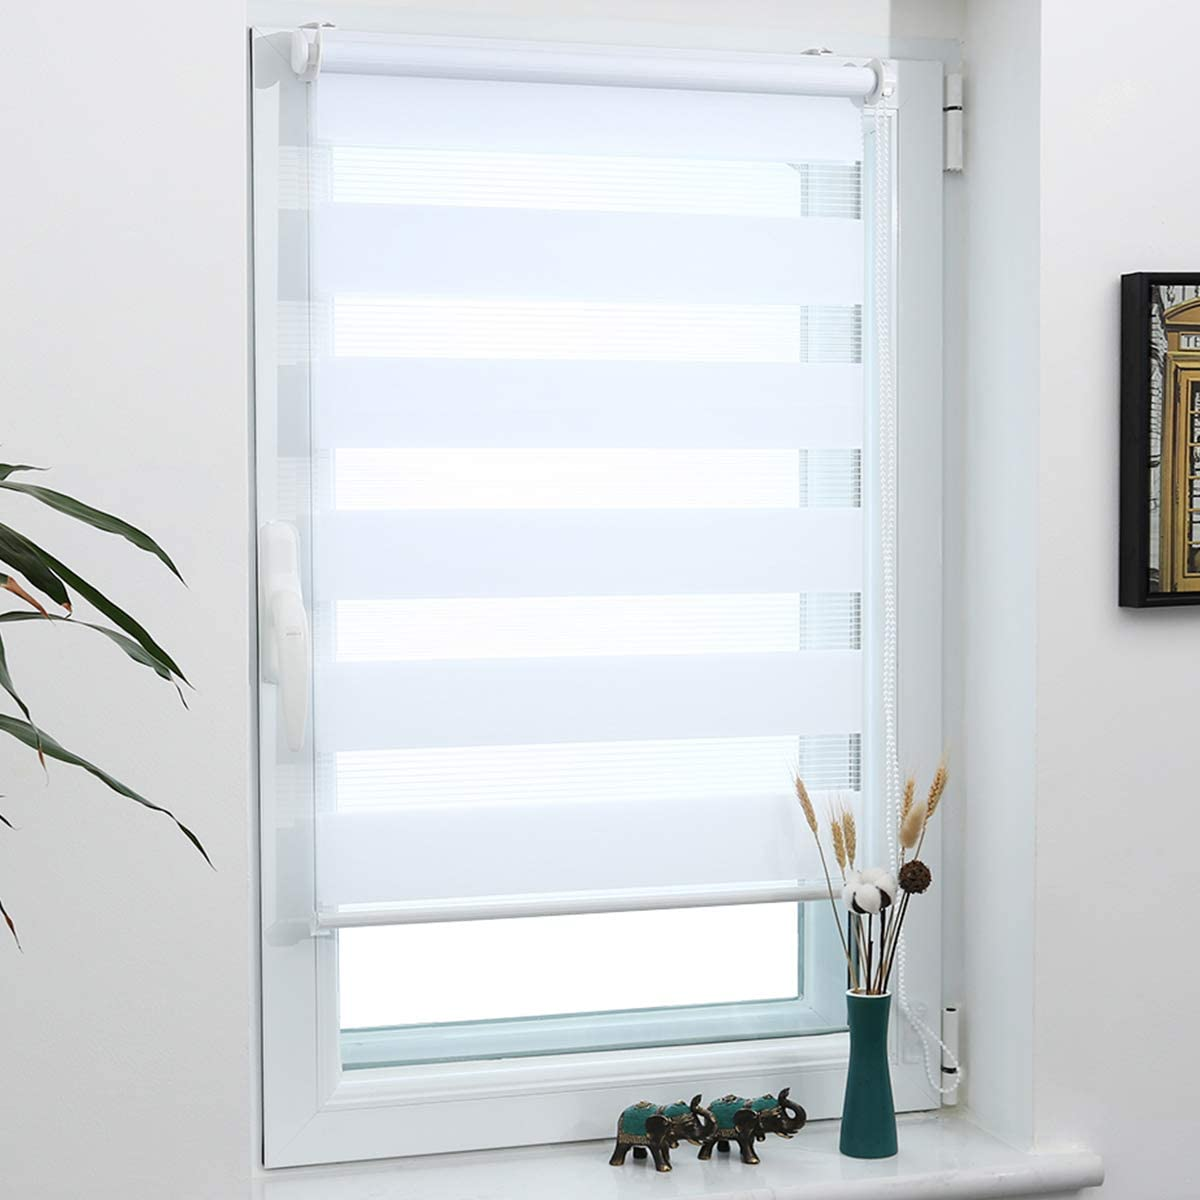 Grandekor Zebra Roller Day and Night Bilnd Roller Bilnds Chain for Window Easy Fix without Drilling Security, Privacy & Style - White - 70x120cm (WxD) W70 x D120 cm (fabric wide=66cm) White